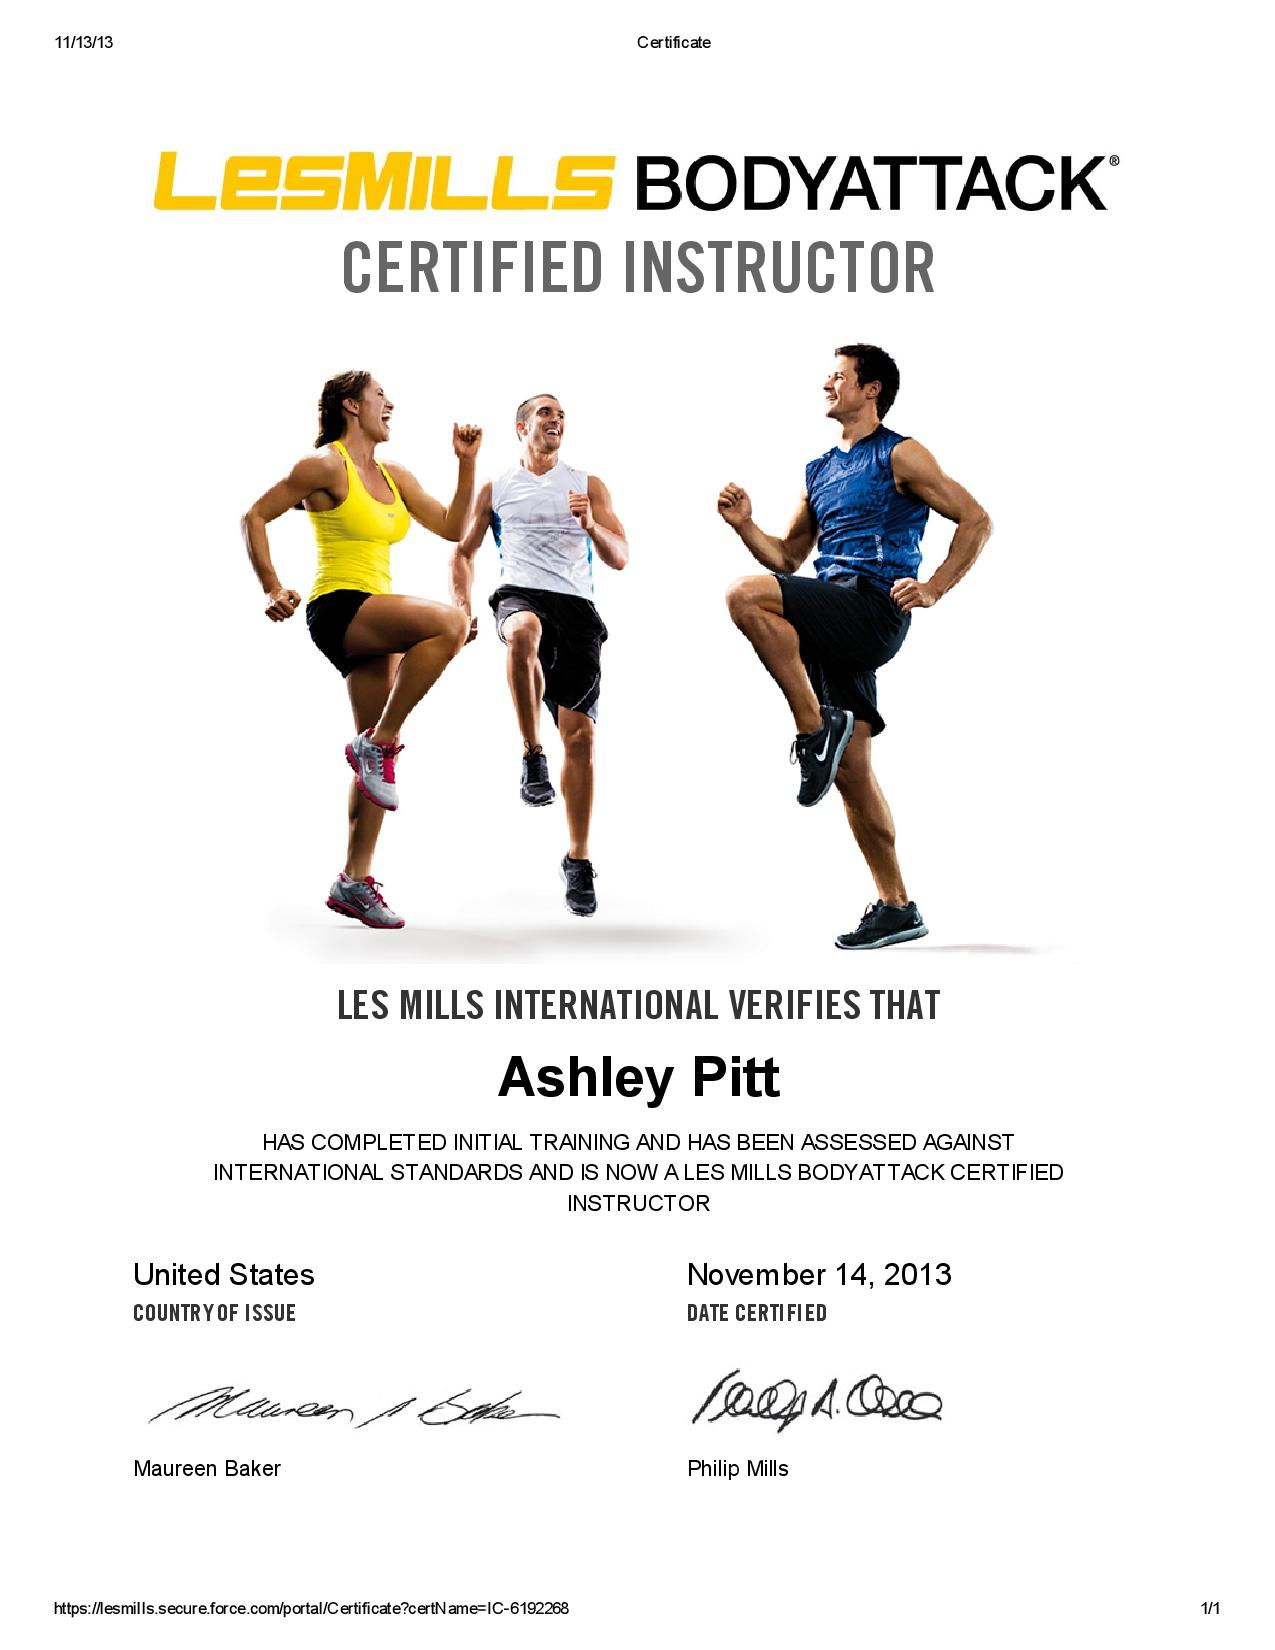 Bodyattack Certificate A Lady Goes West